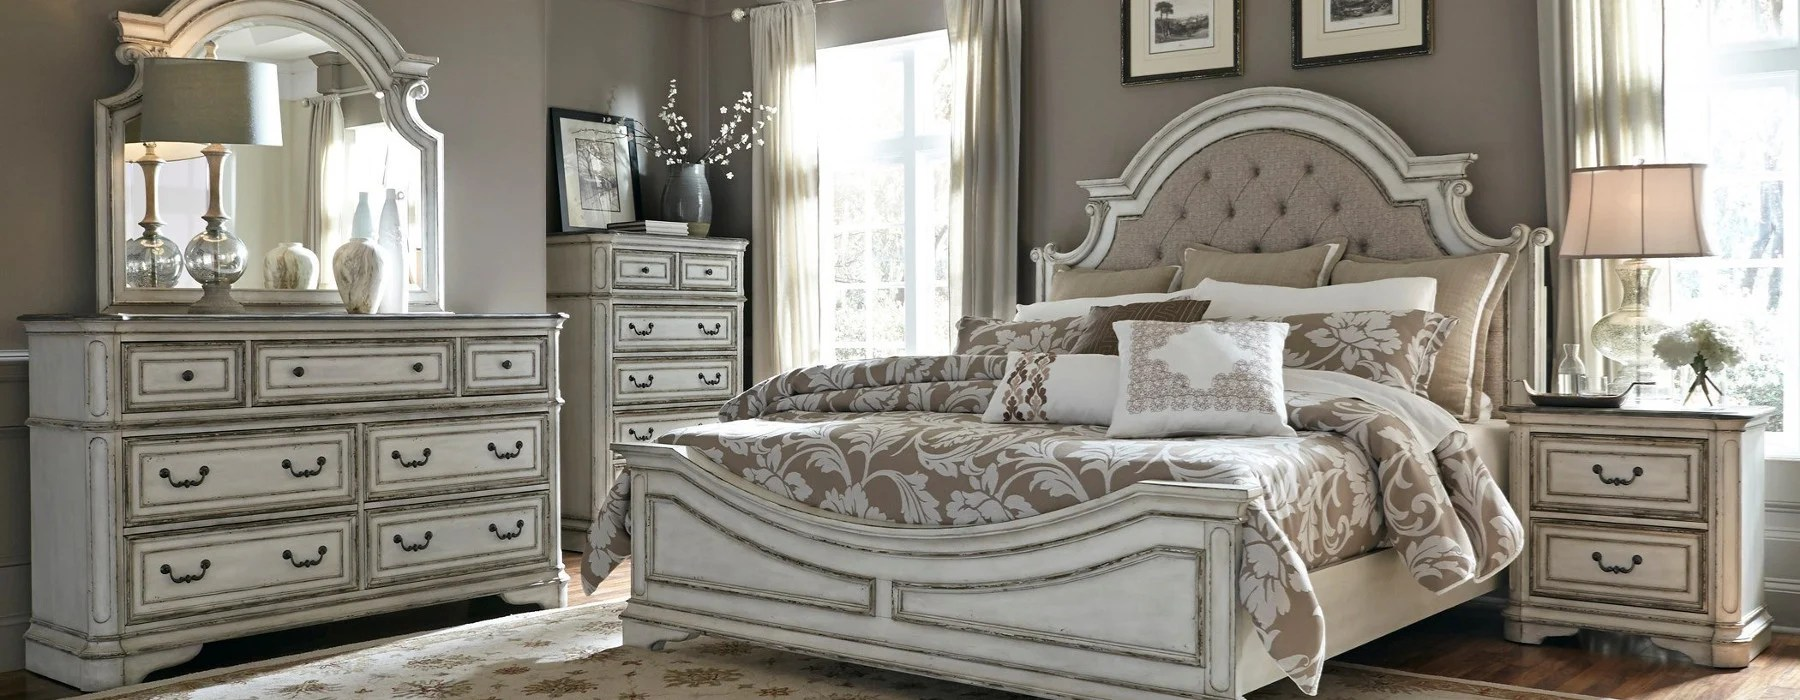 Kemper Home Furnishings Furniture Store In London And Somerset Ky